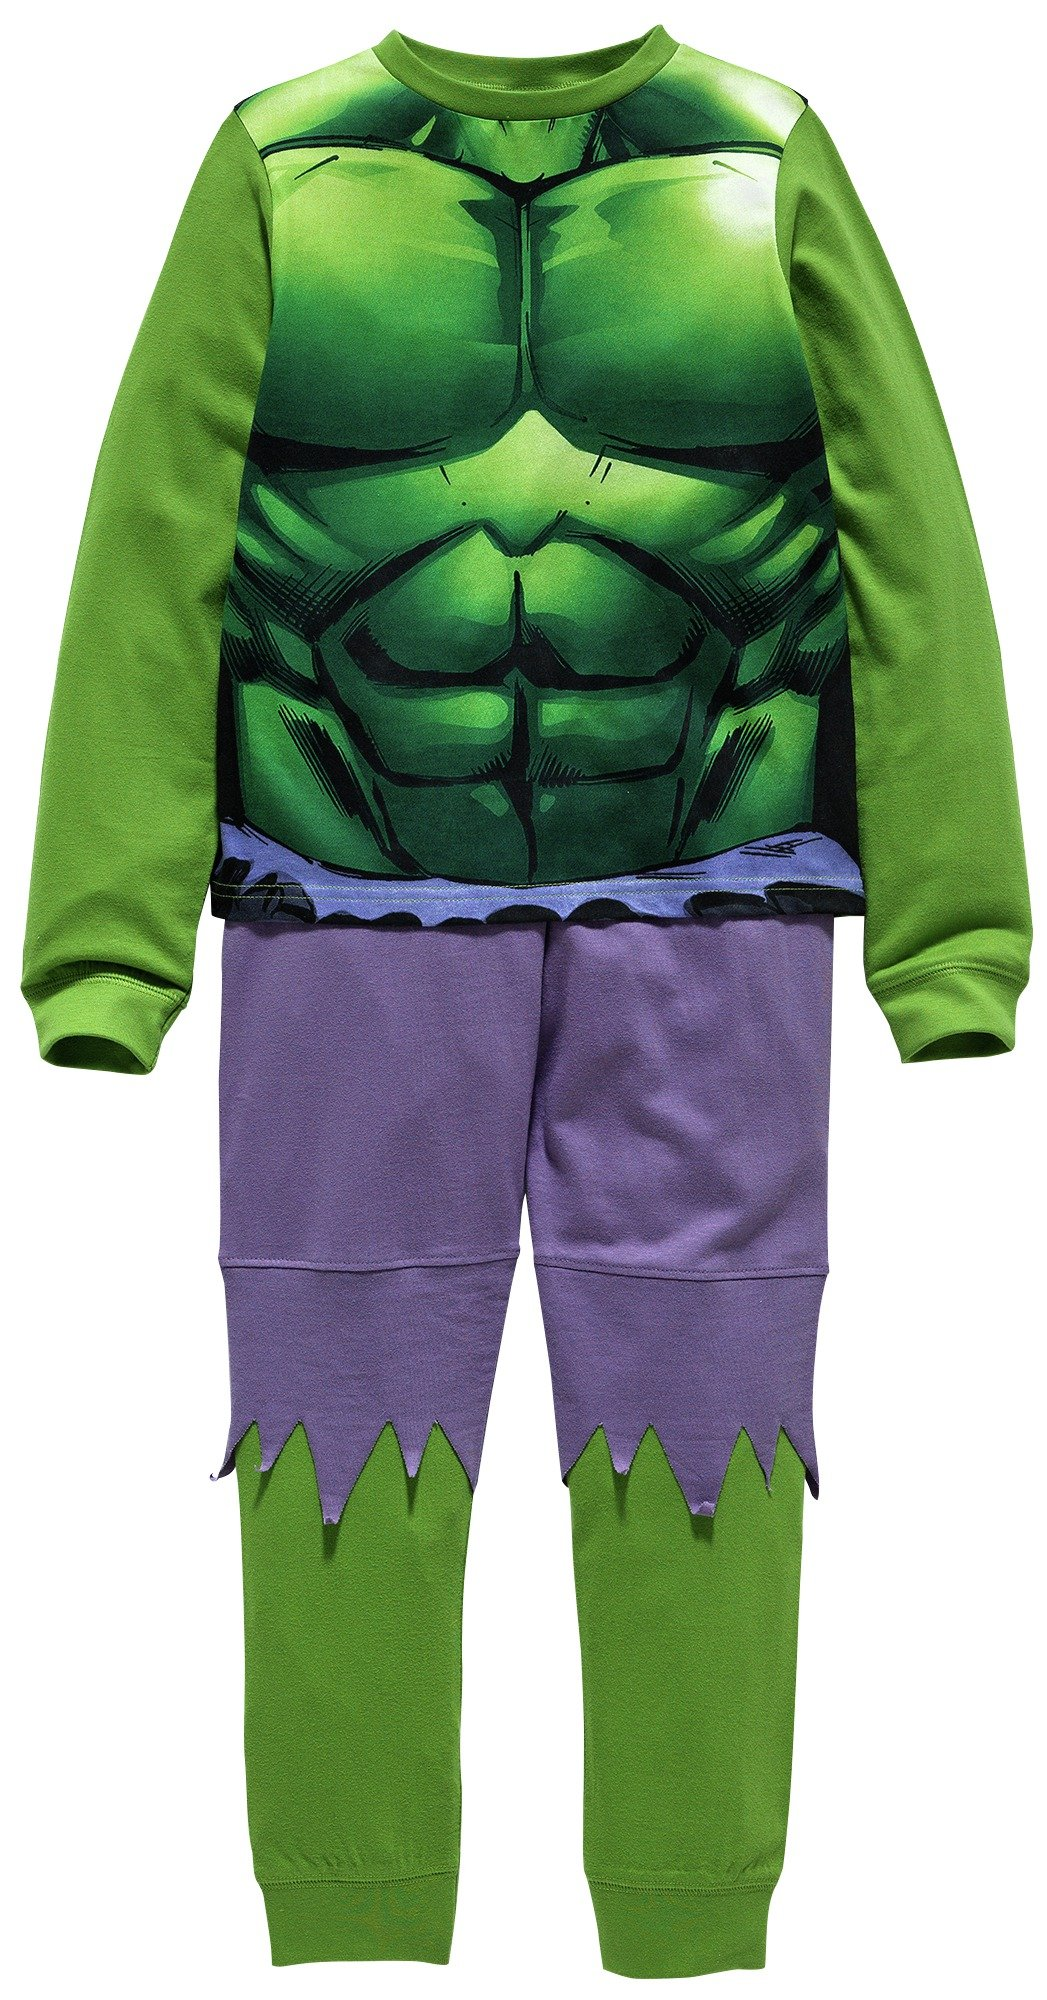 Image of Hulk Novelty Pyjamas - 3-4 Years.